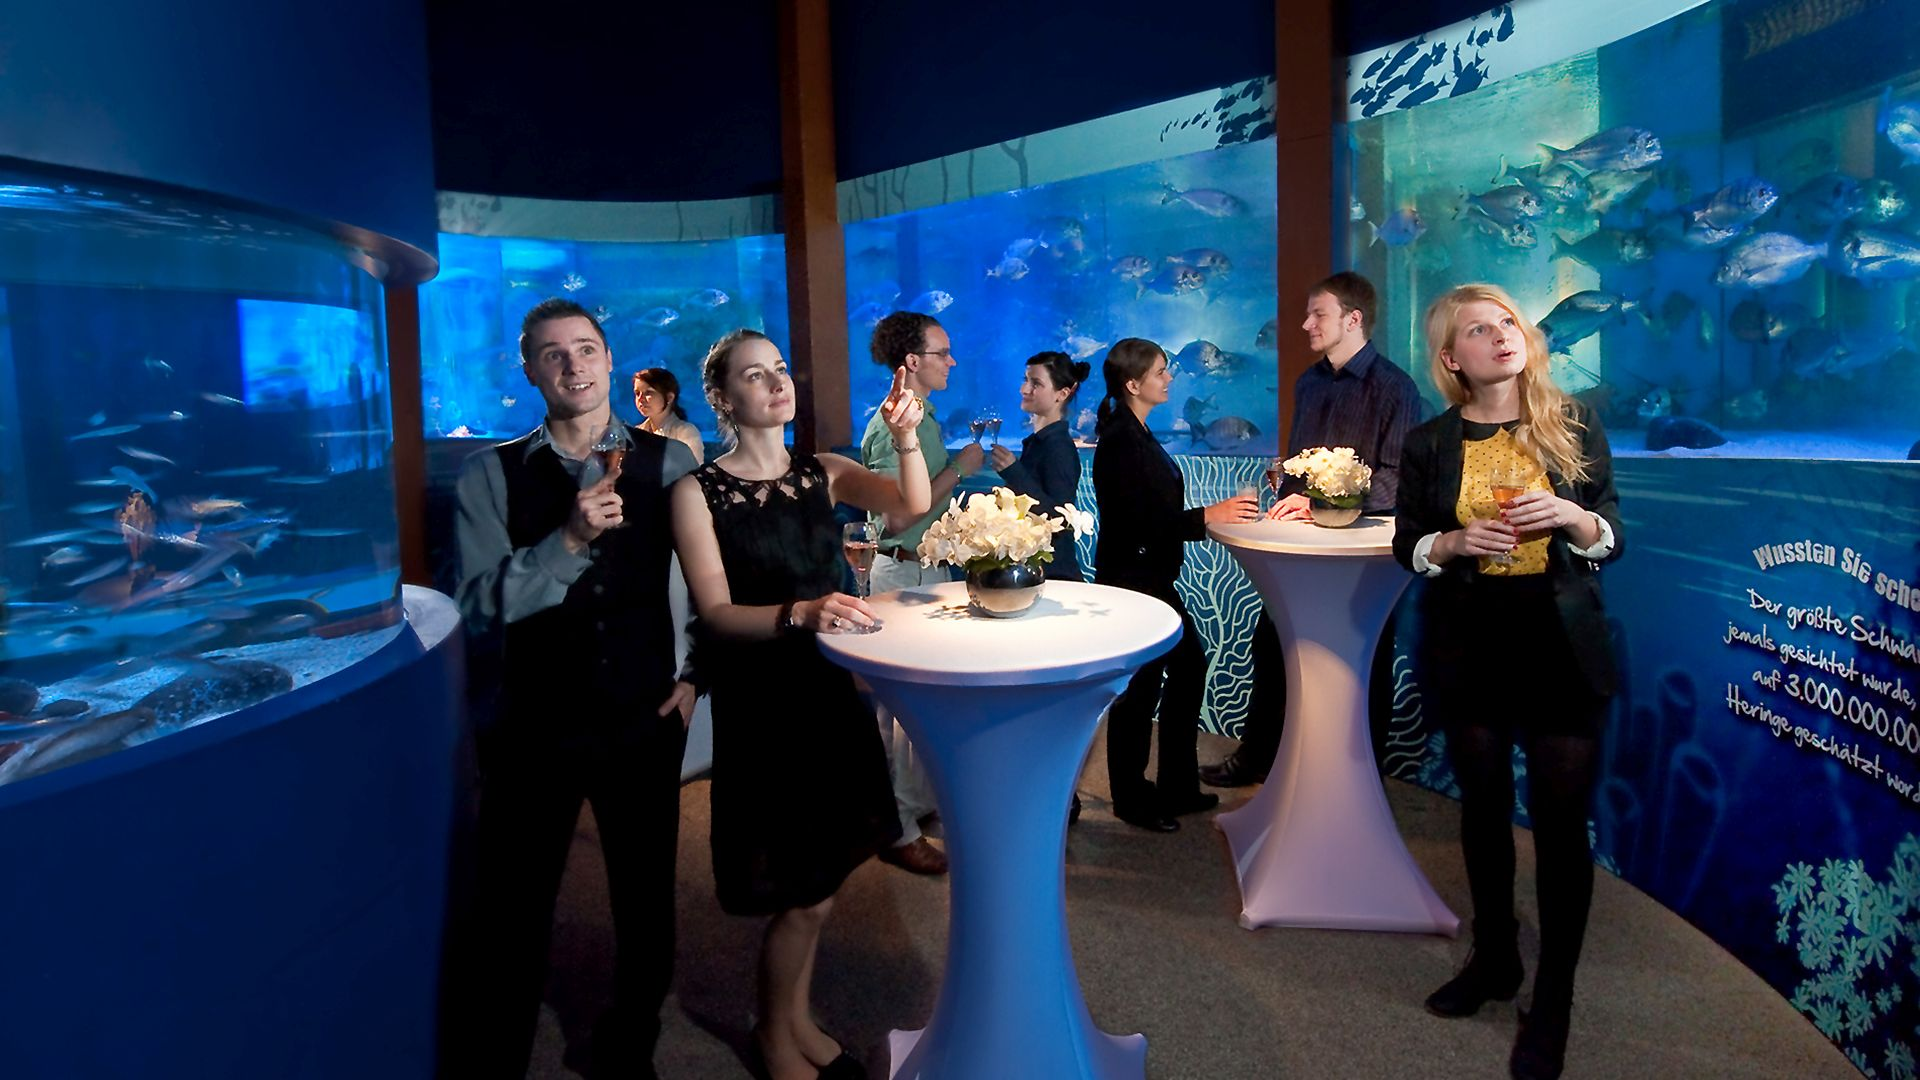 AquaDom & SEA LIFE Berlin - Up to 50 persons - fiylo